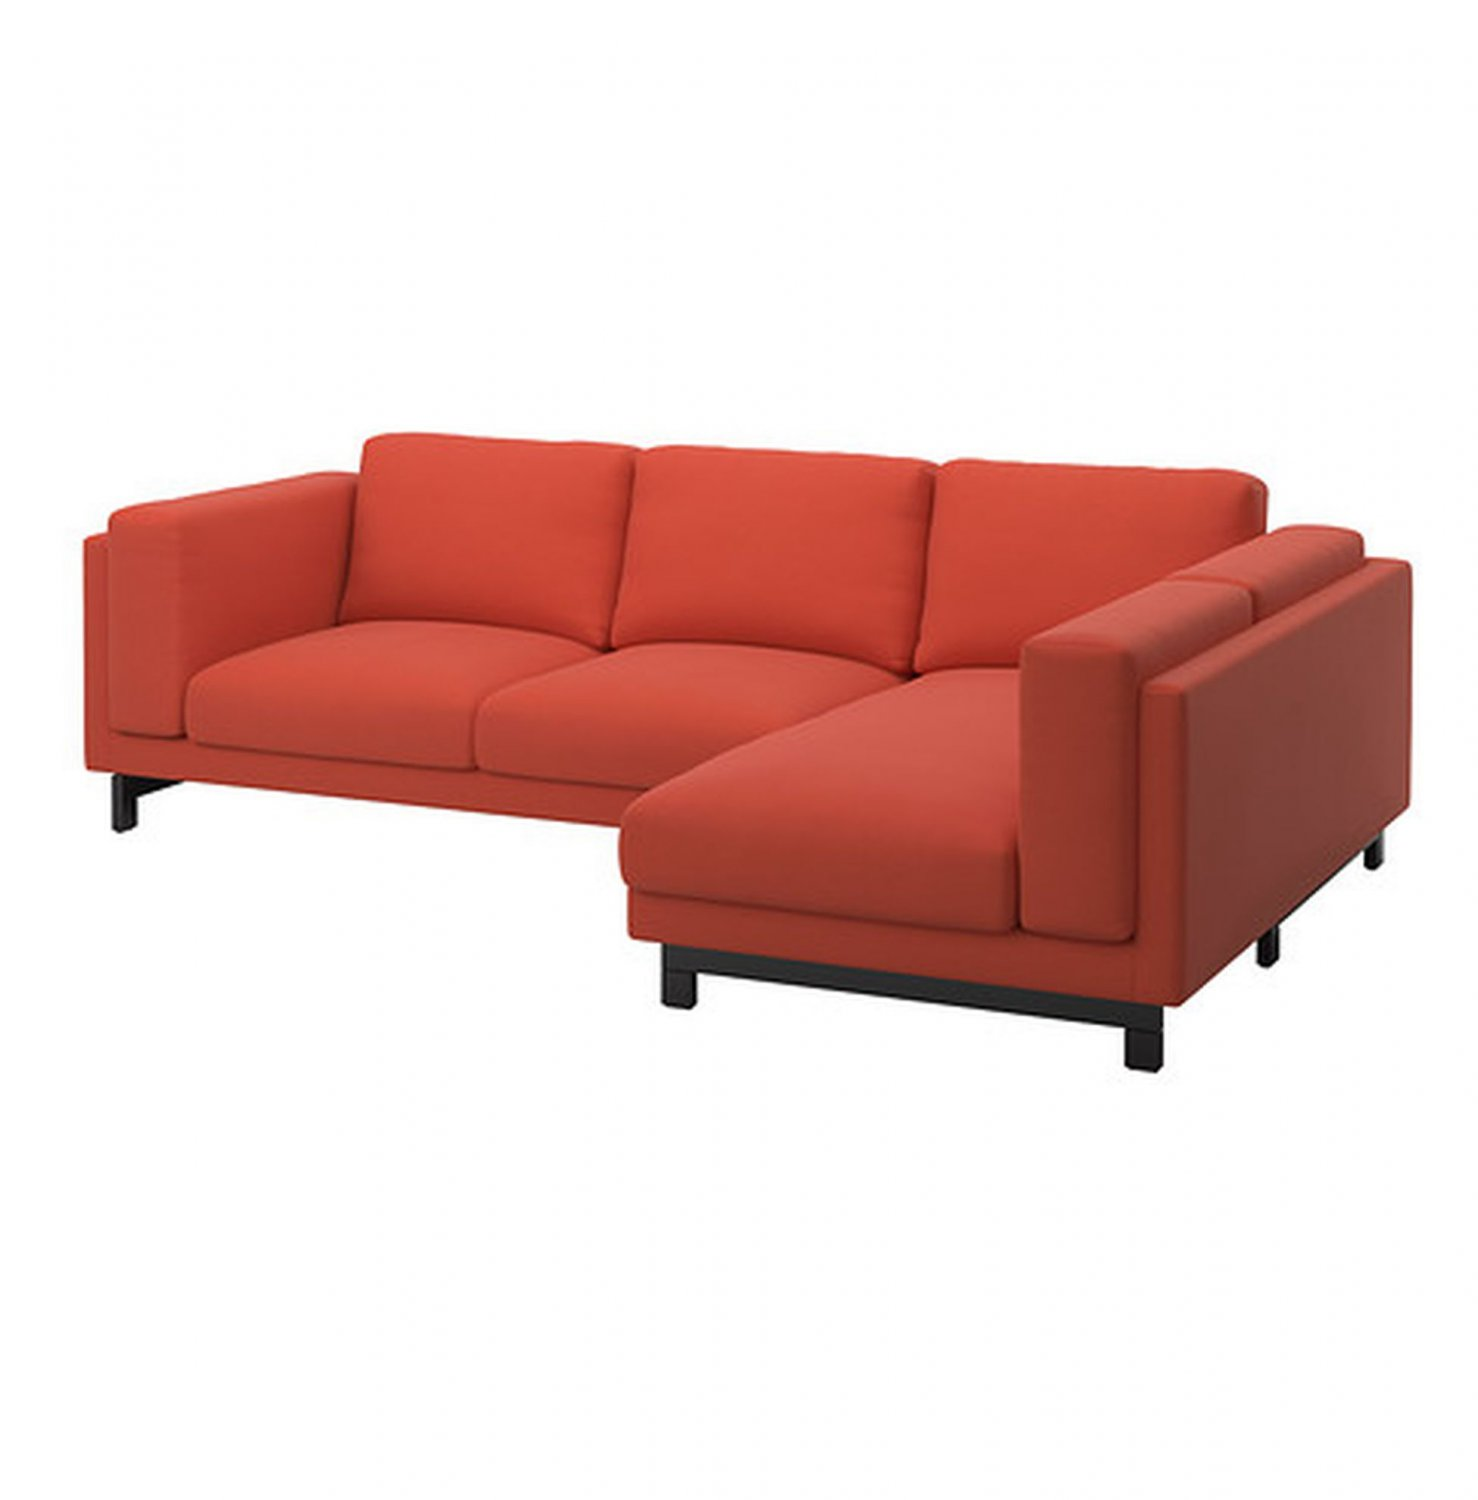 Ikea Nockeby Slipcover Loveseat W Chaise Right Cover Risane Orange